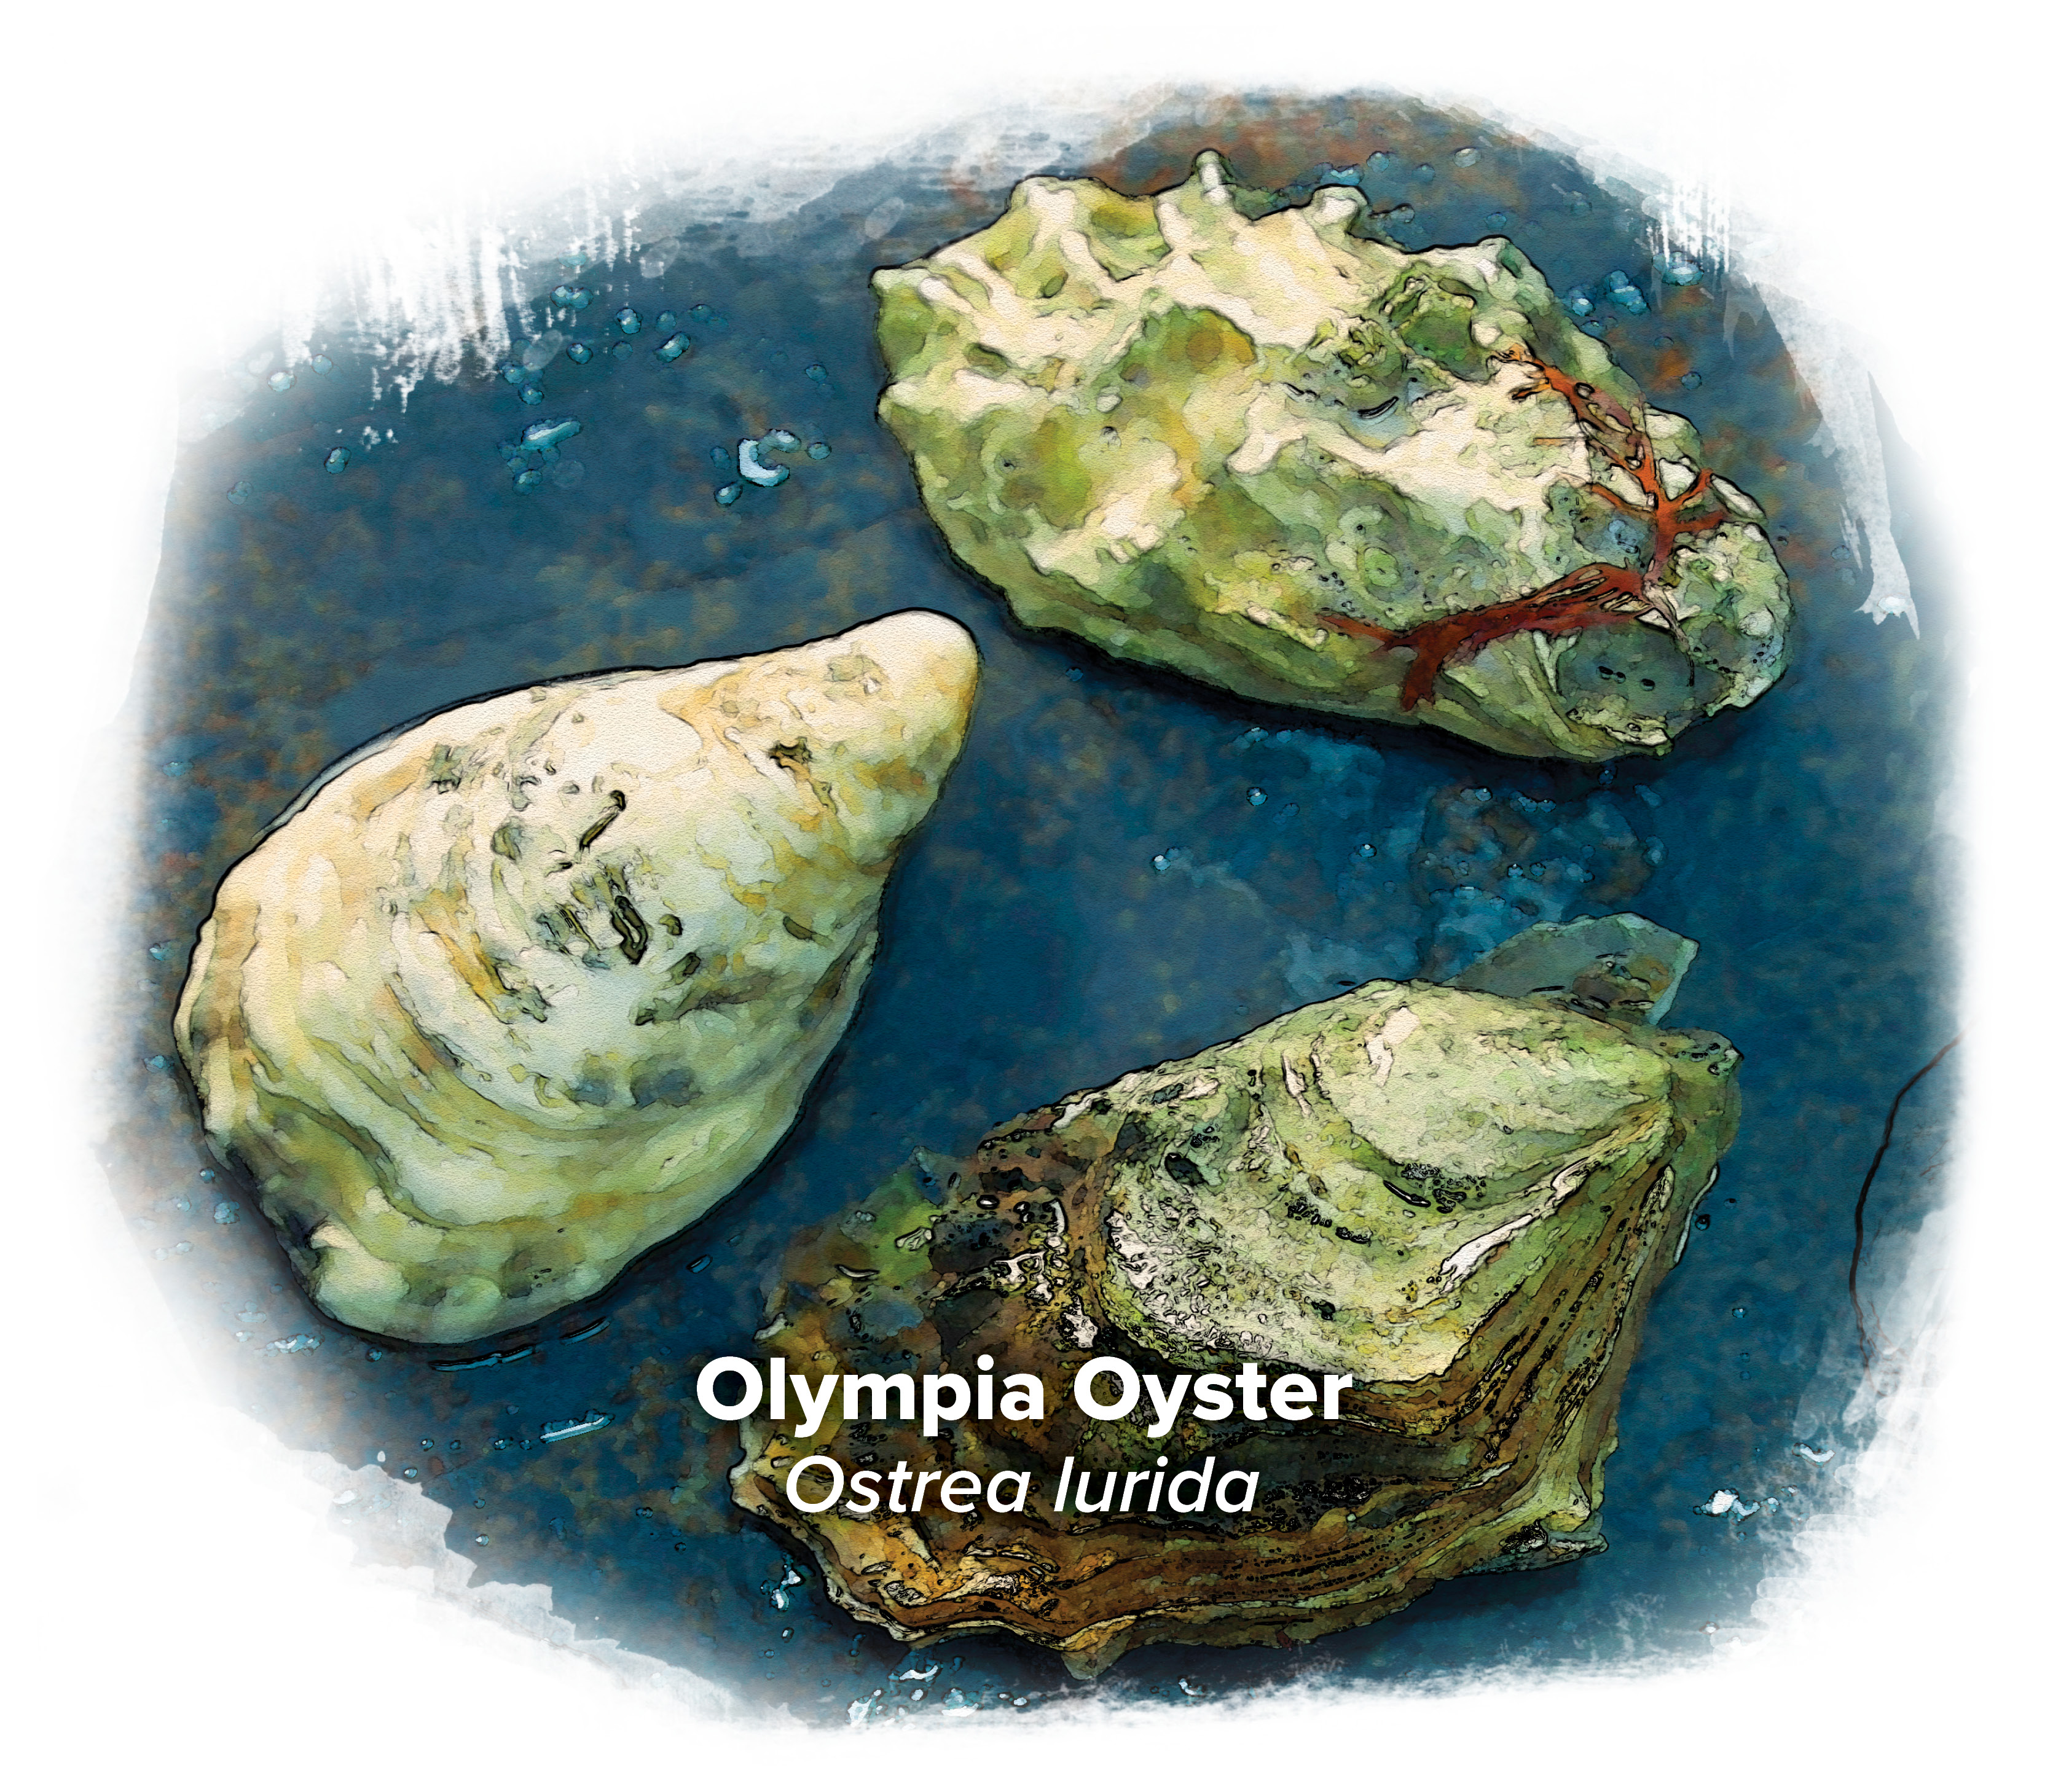 olympia oyster illustration